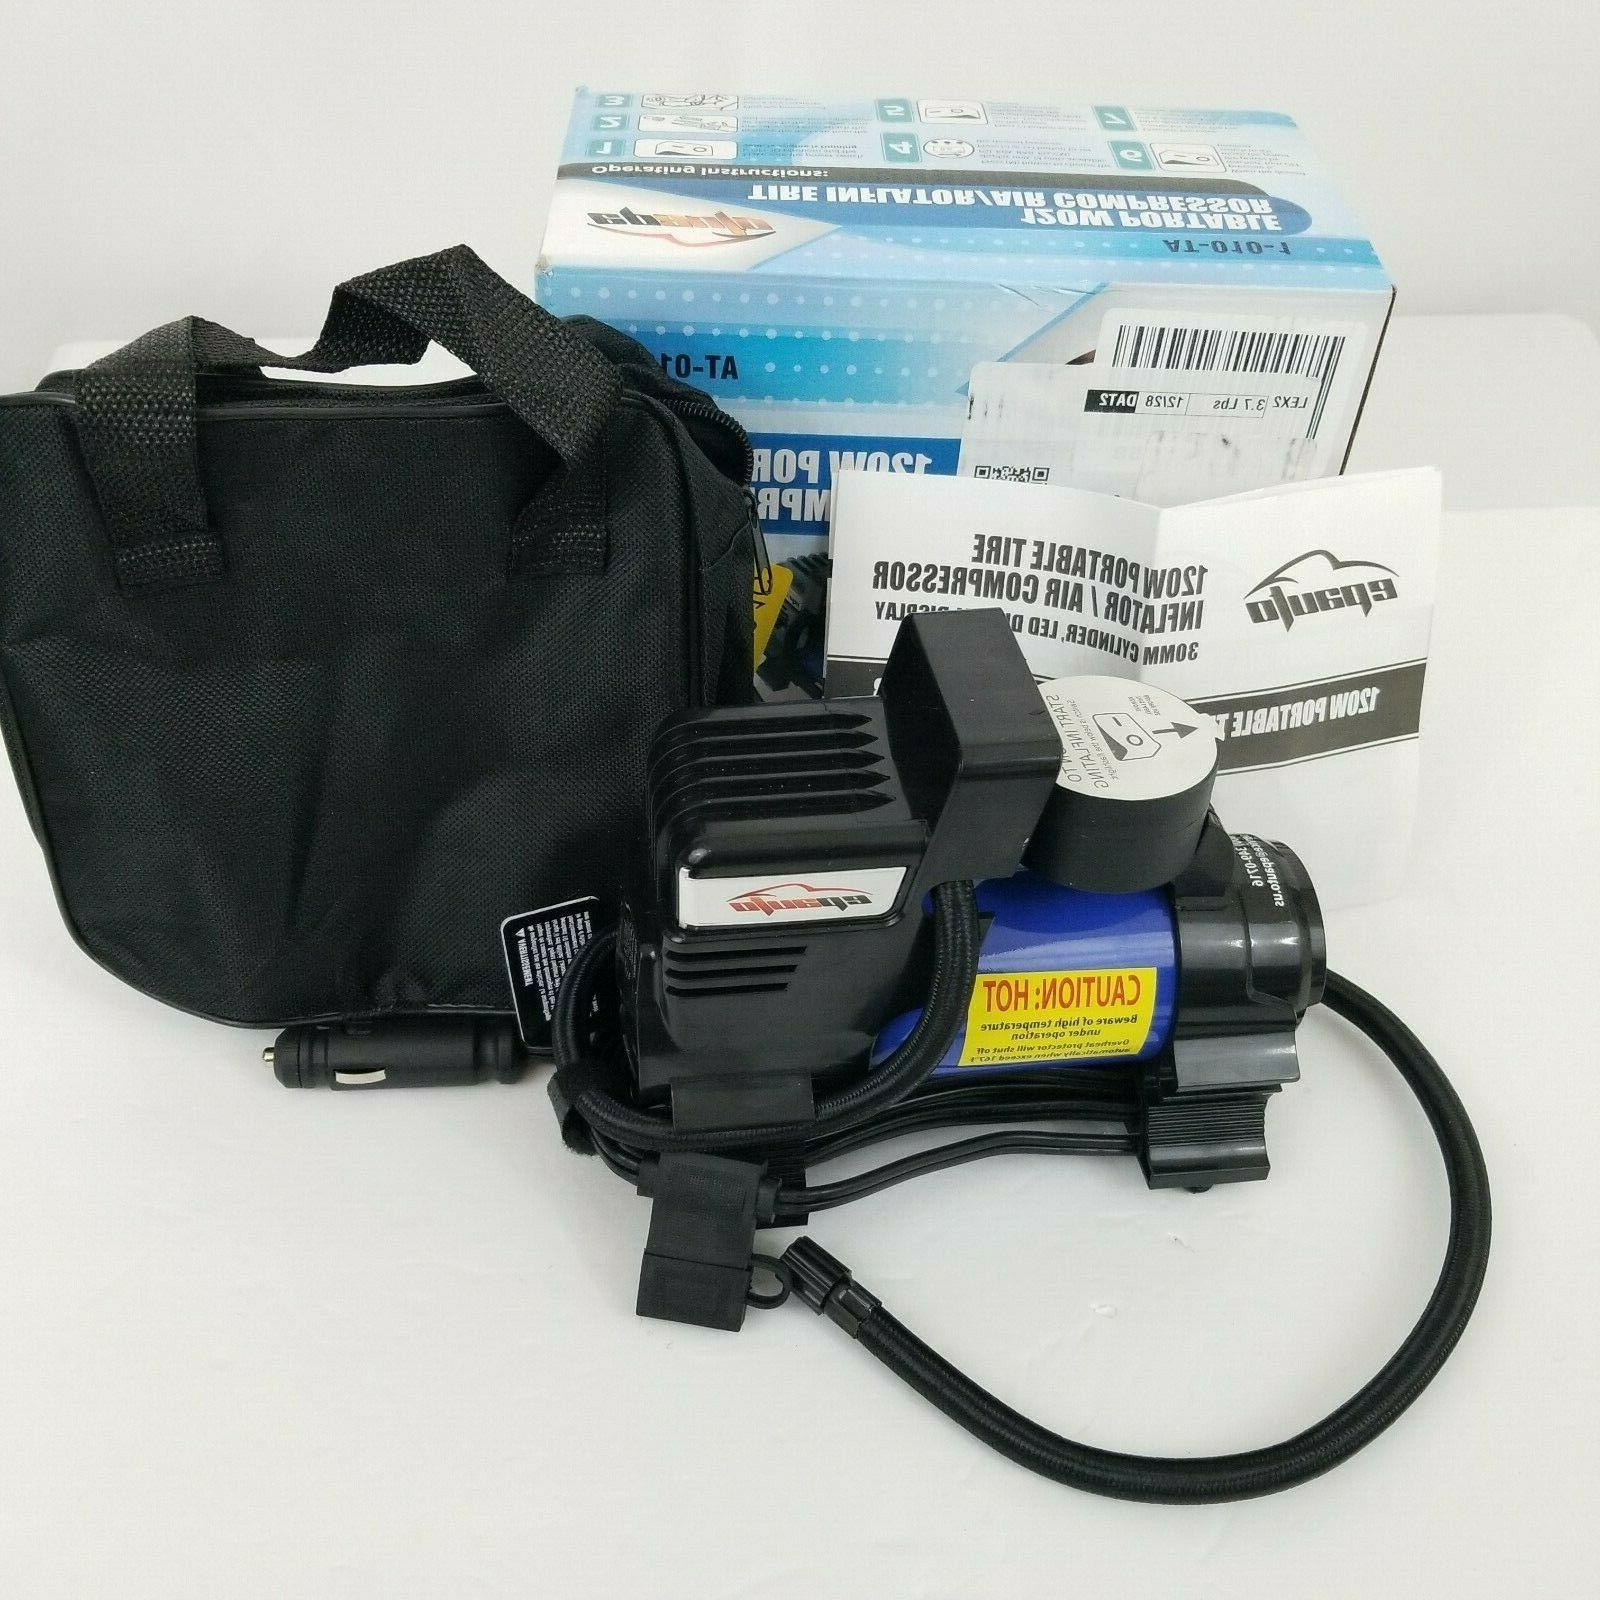 12v dc portable air compressor pump digital